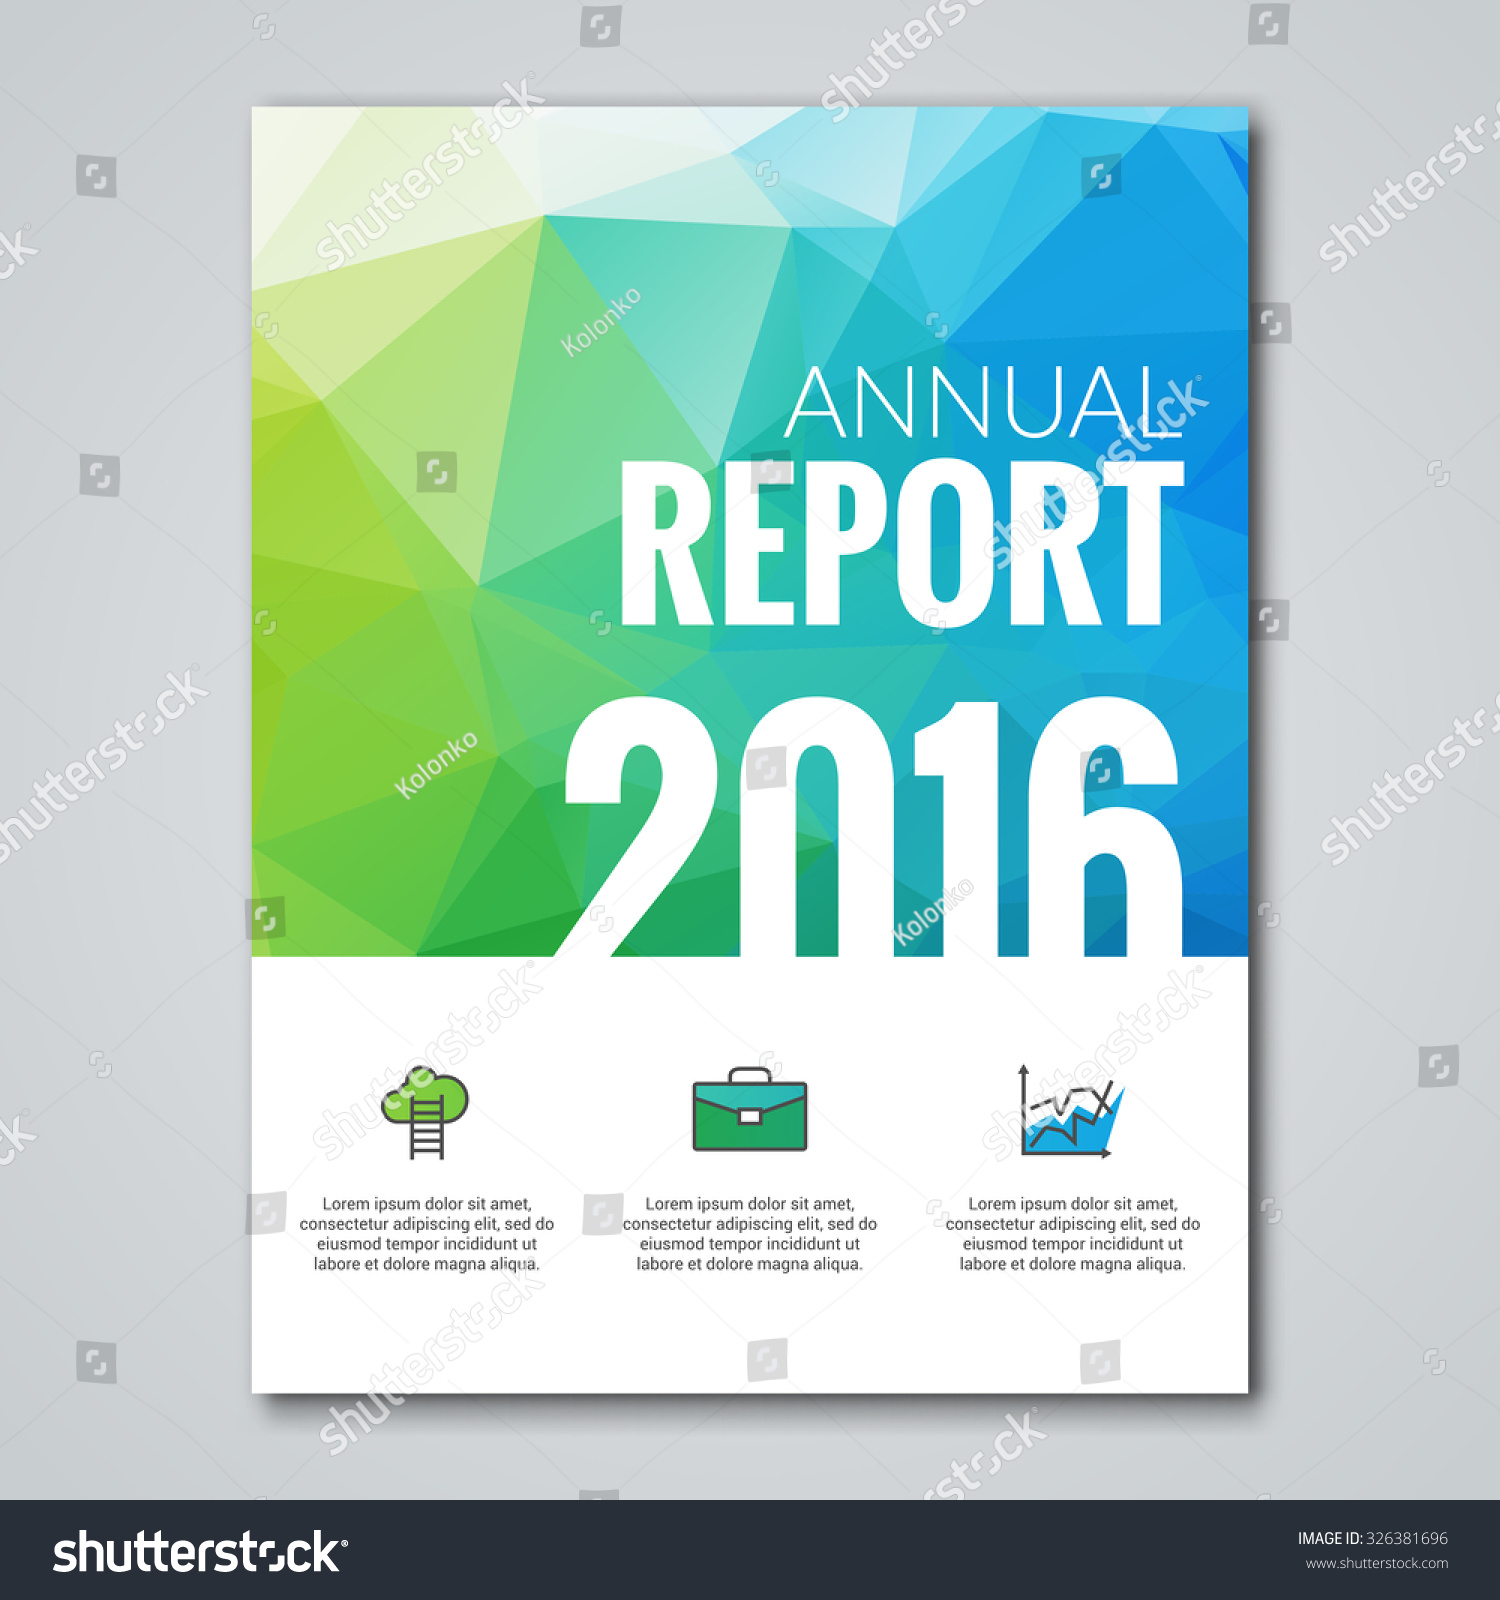 business design cover magazine infographic background stock vector business design cover magazine info graphic background annual report template vector illustration